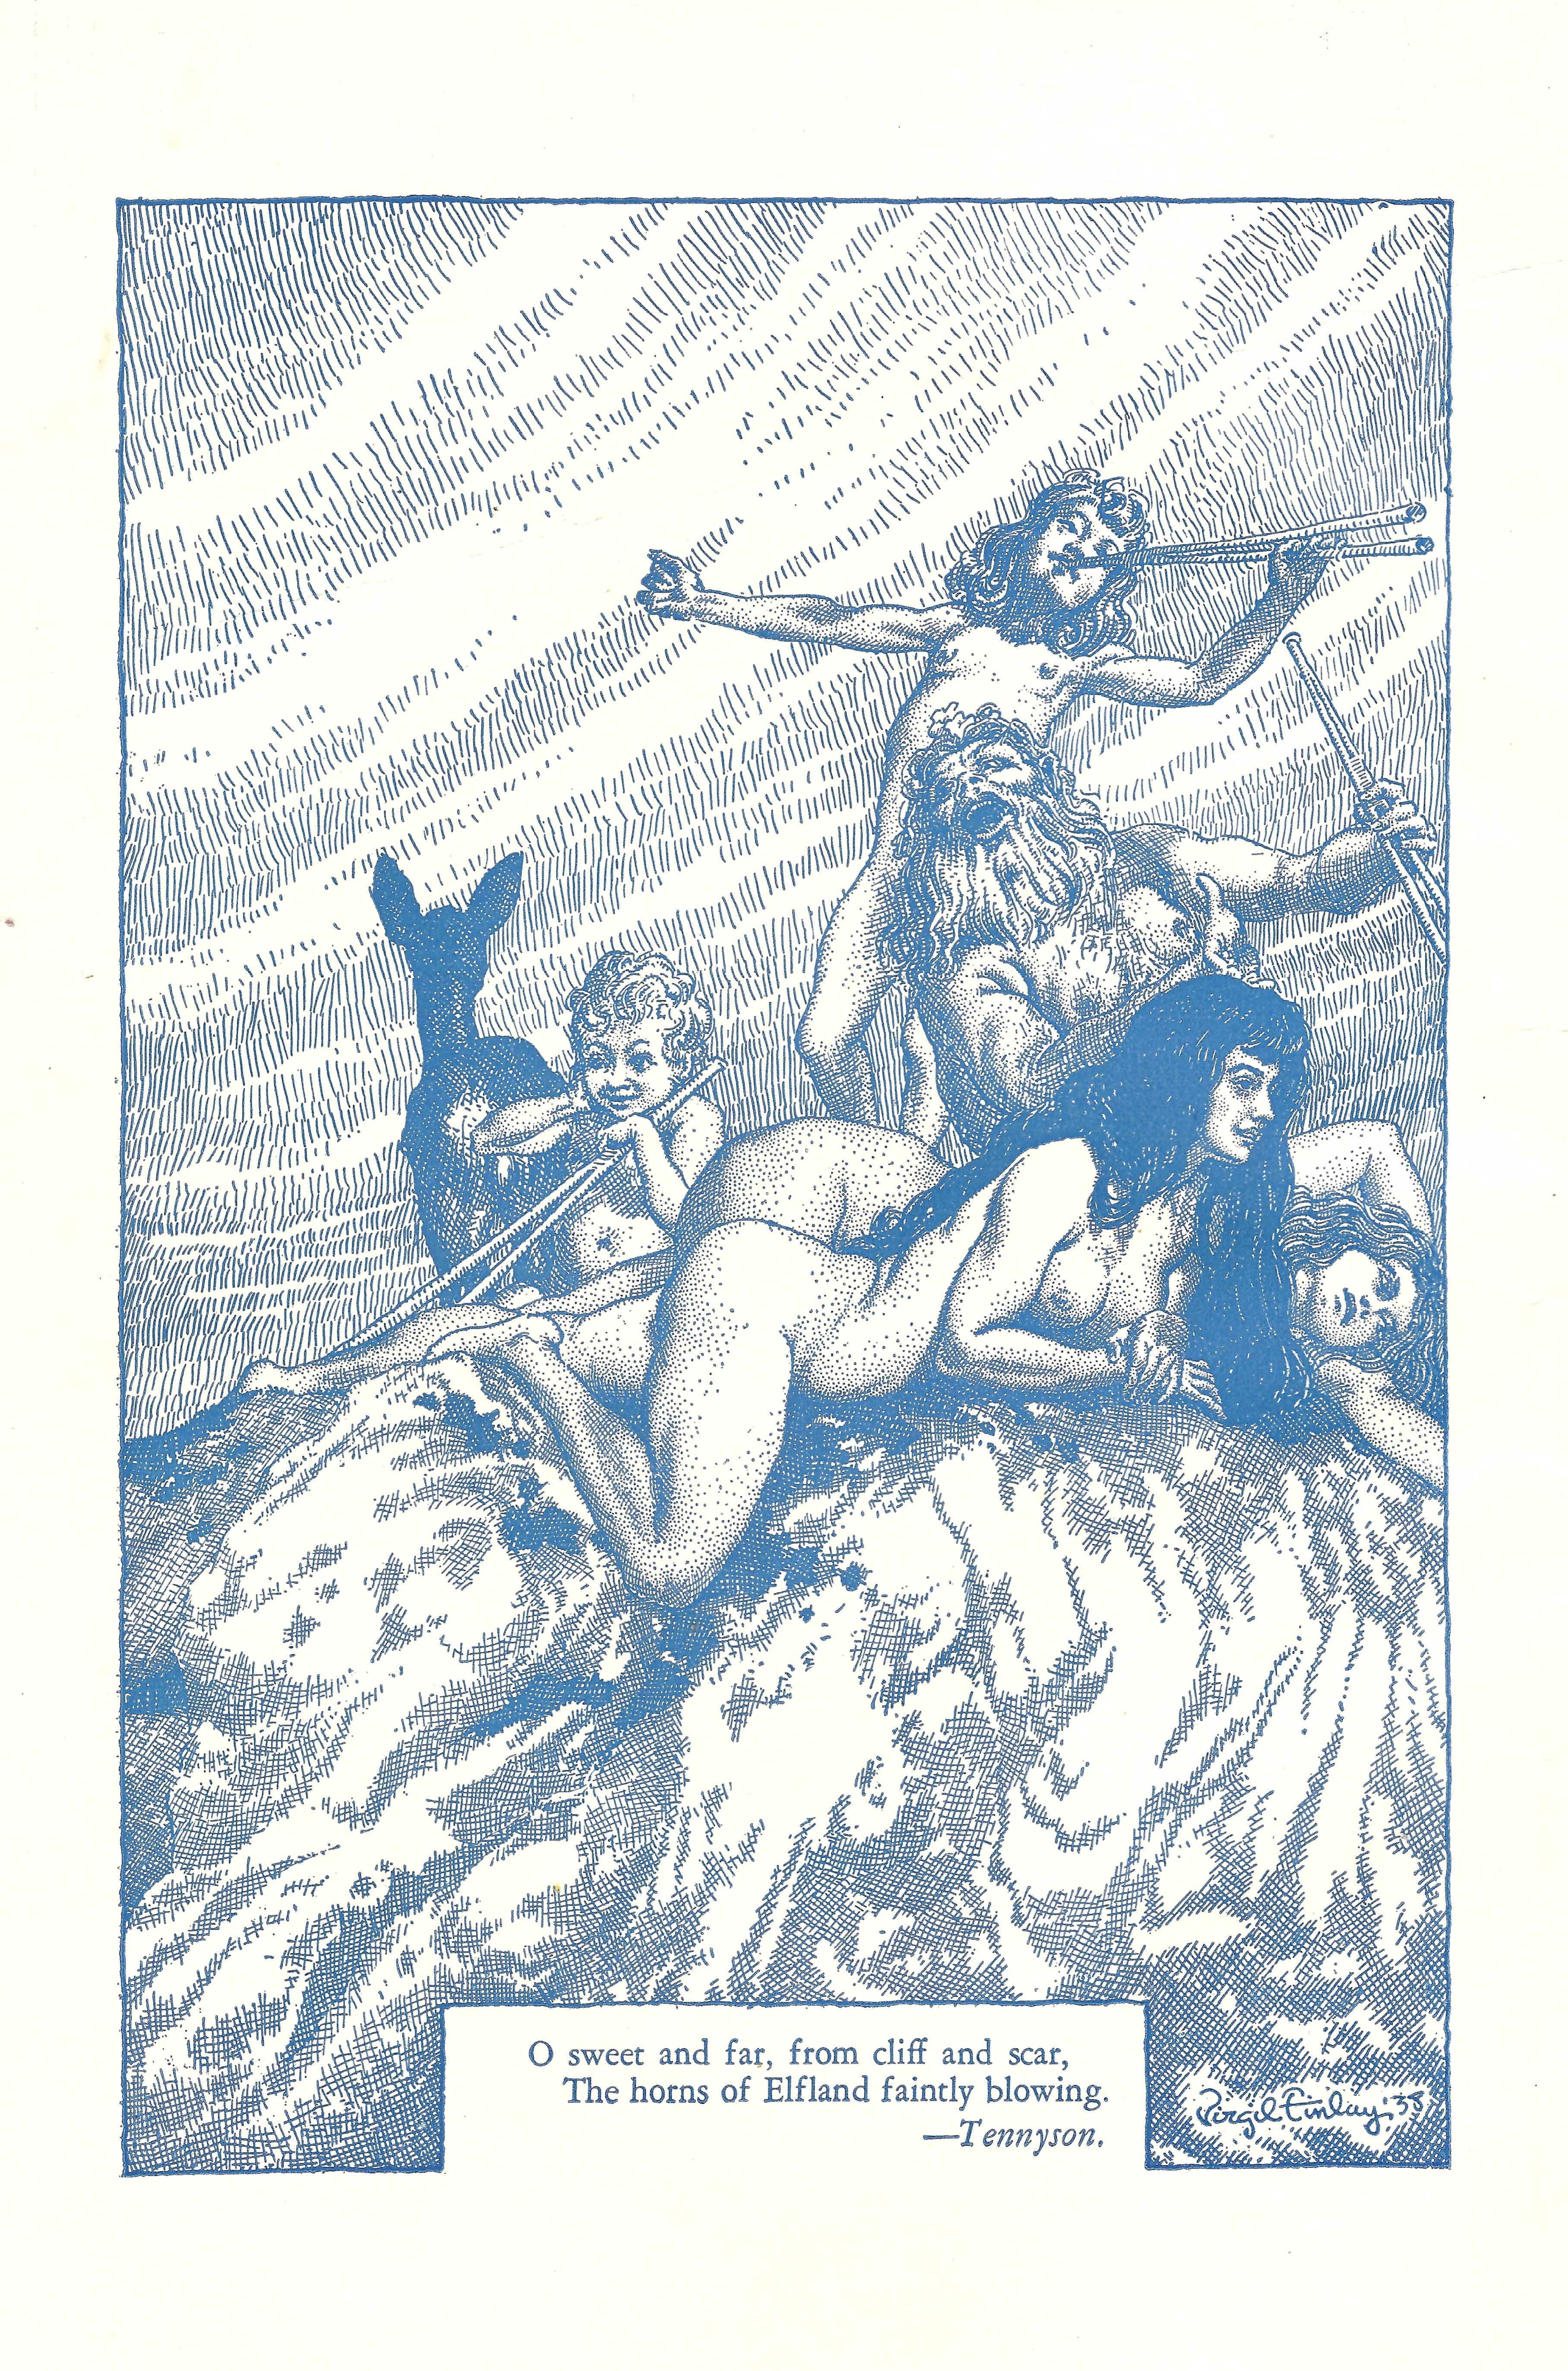 An inside-the-front cover illustration by Virgil Finlay that appeared in October 1938.